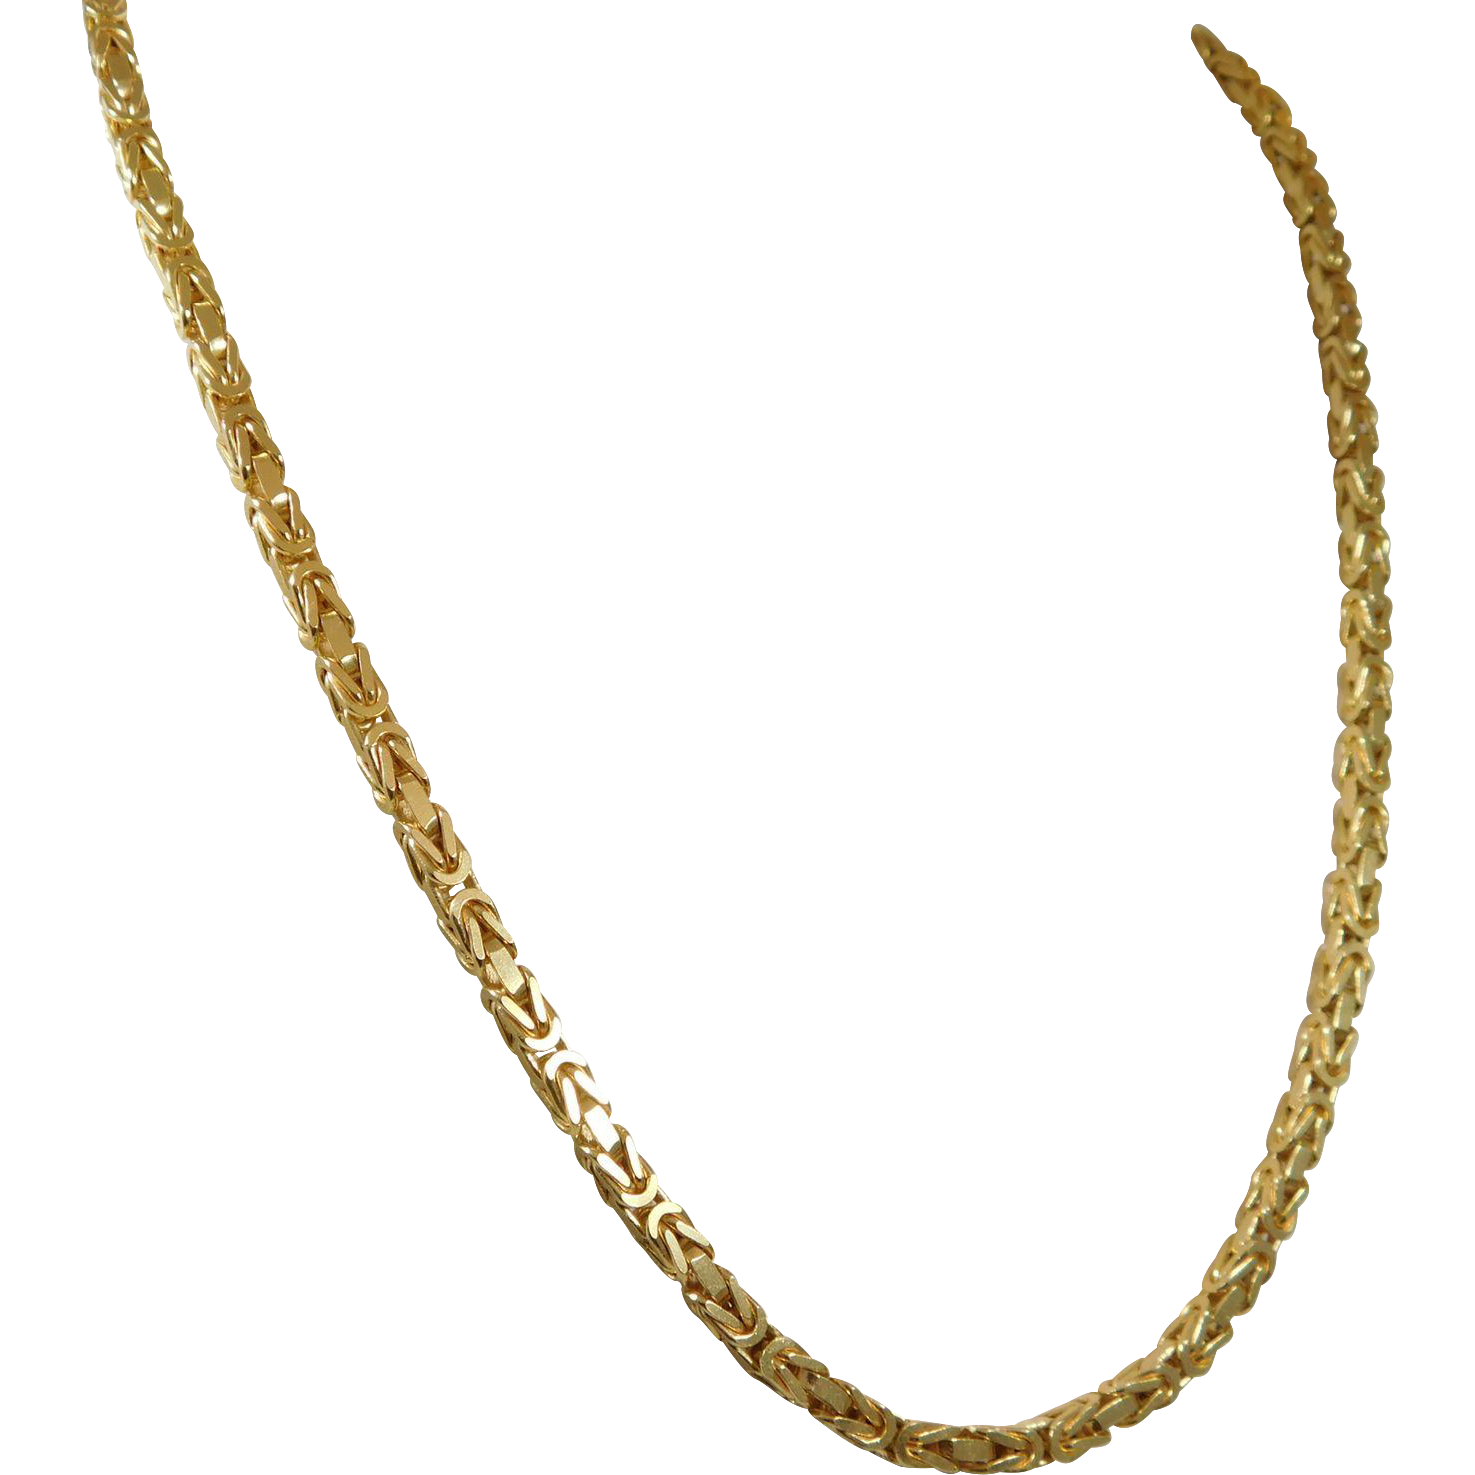 ultralight jewelry diamond gold cut rope com necklace chains inches amazon yellow chain dp